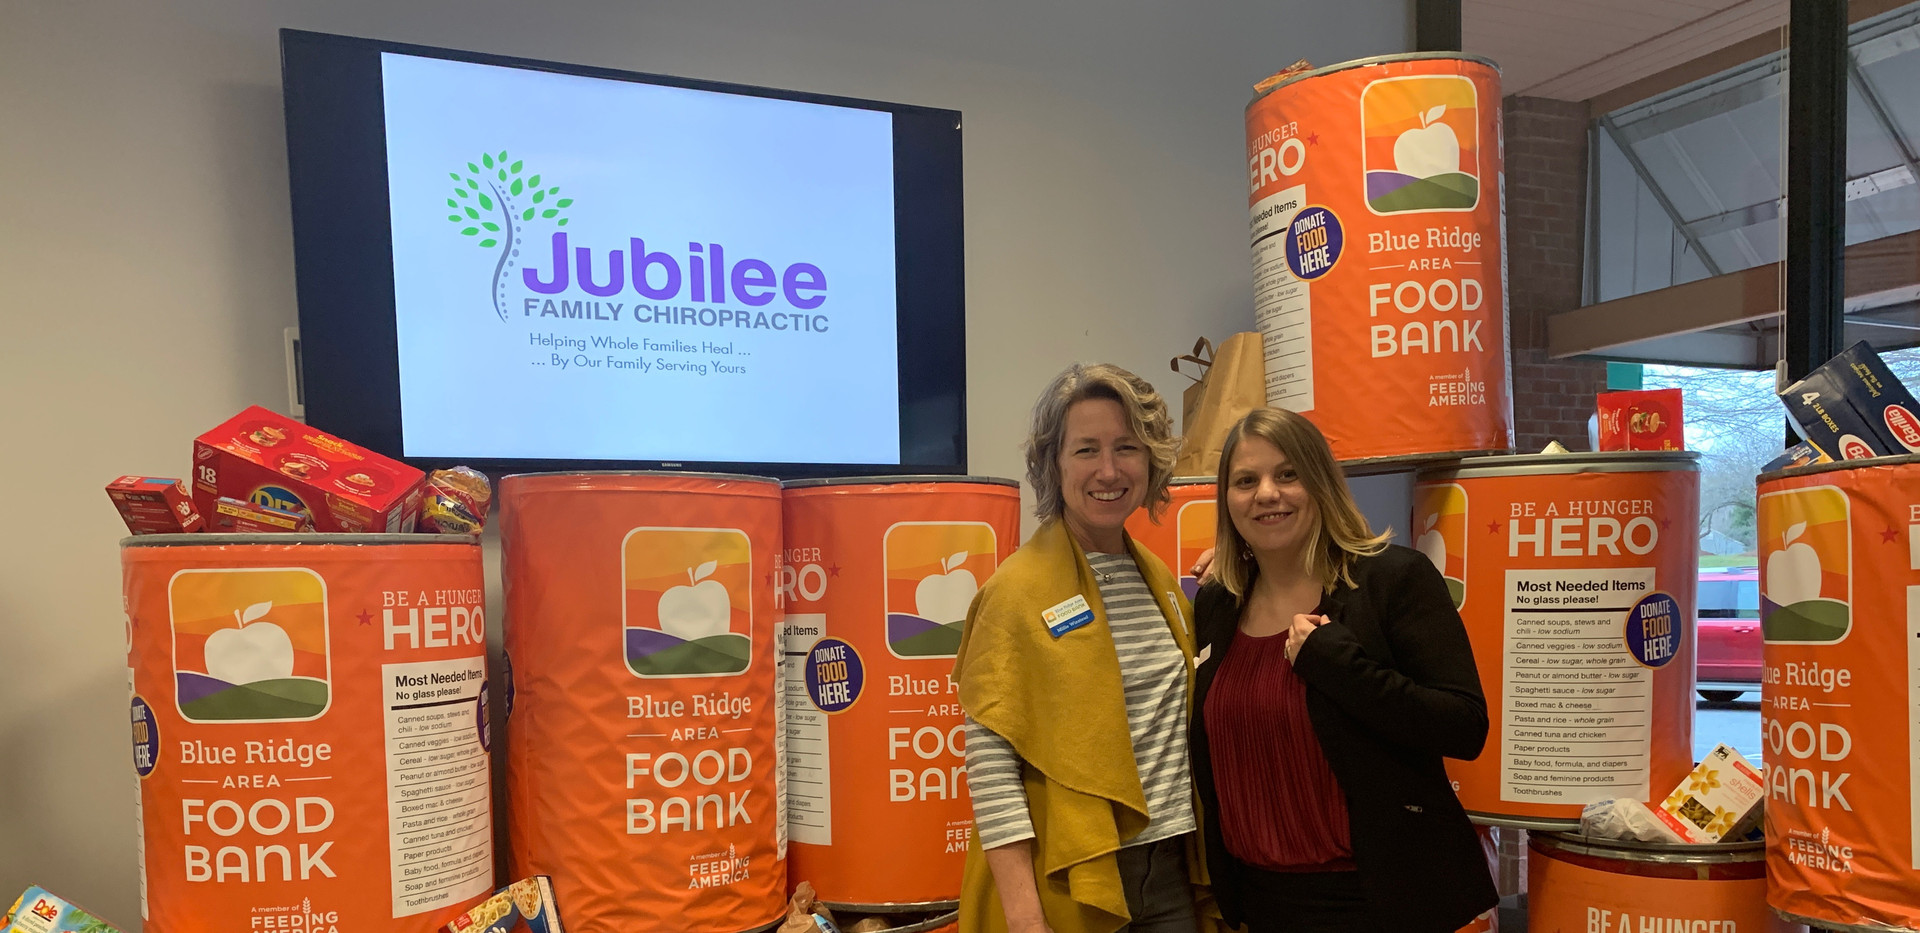 Jubilee Family Chiropractic 2020 Blue Ridge Food Drive. 033